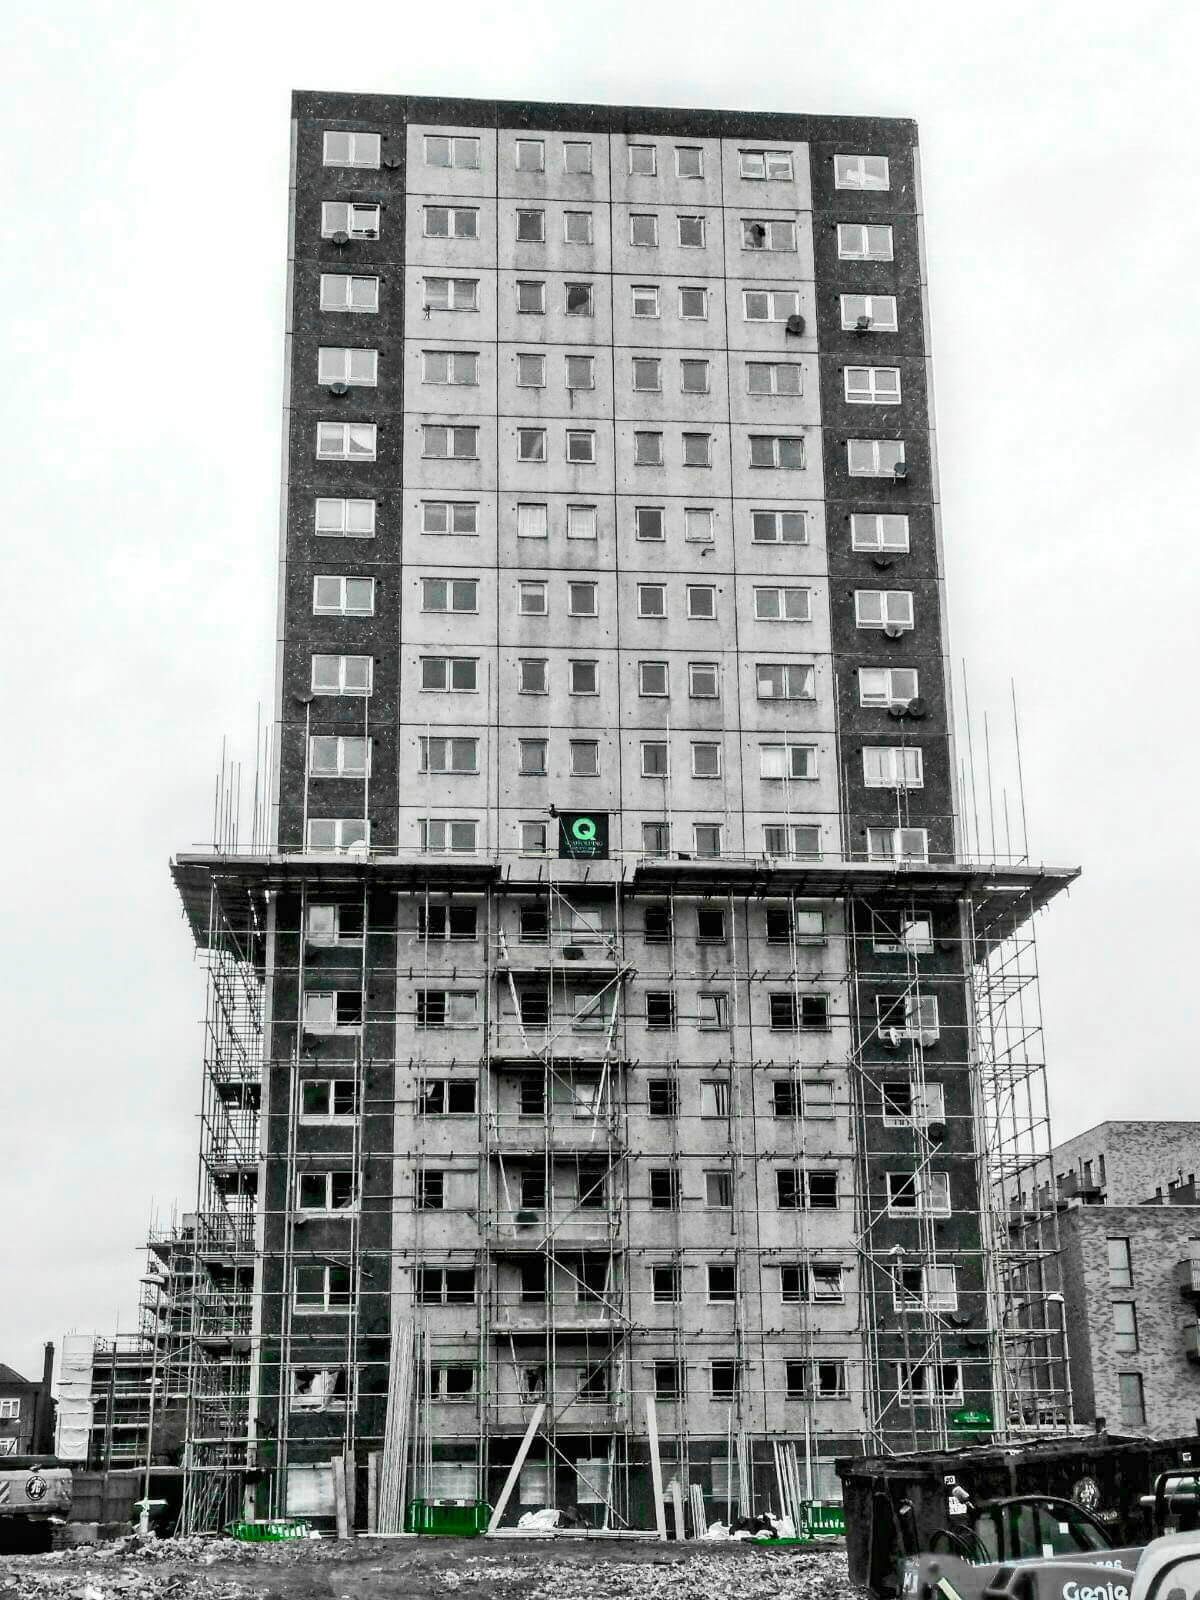 Scaffolding inspections guide